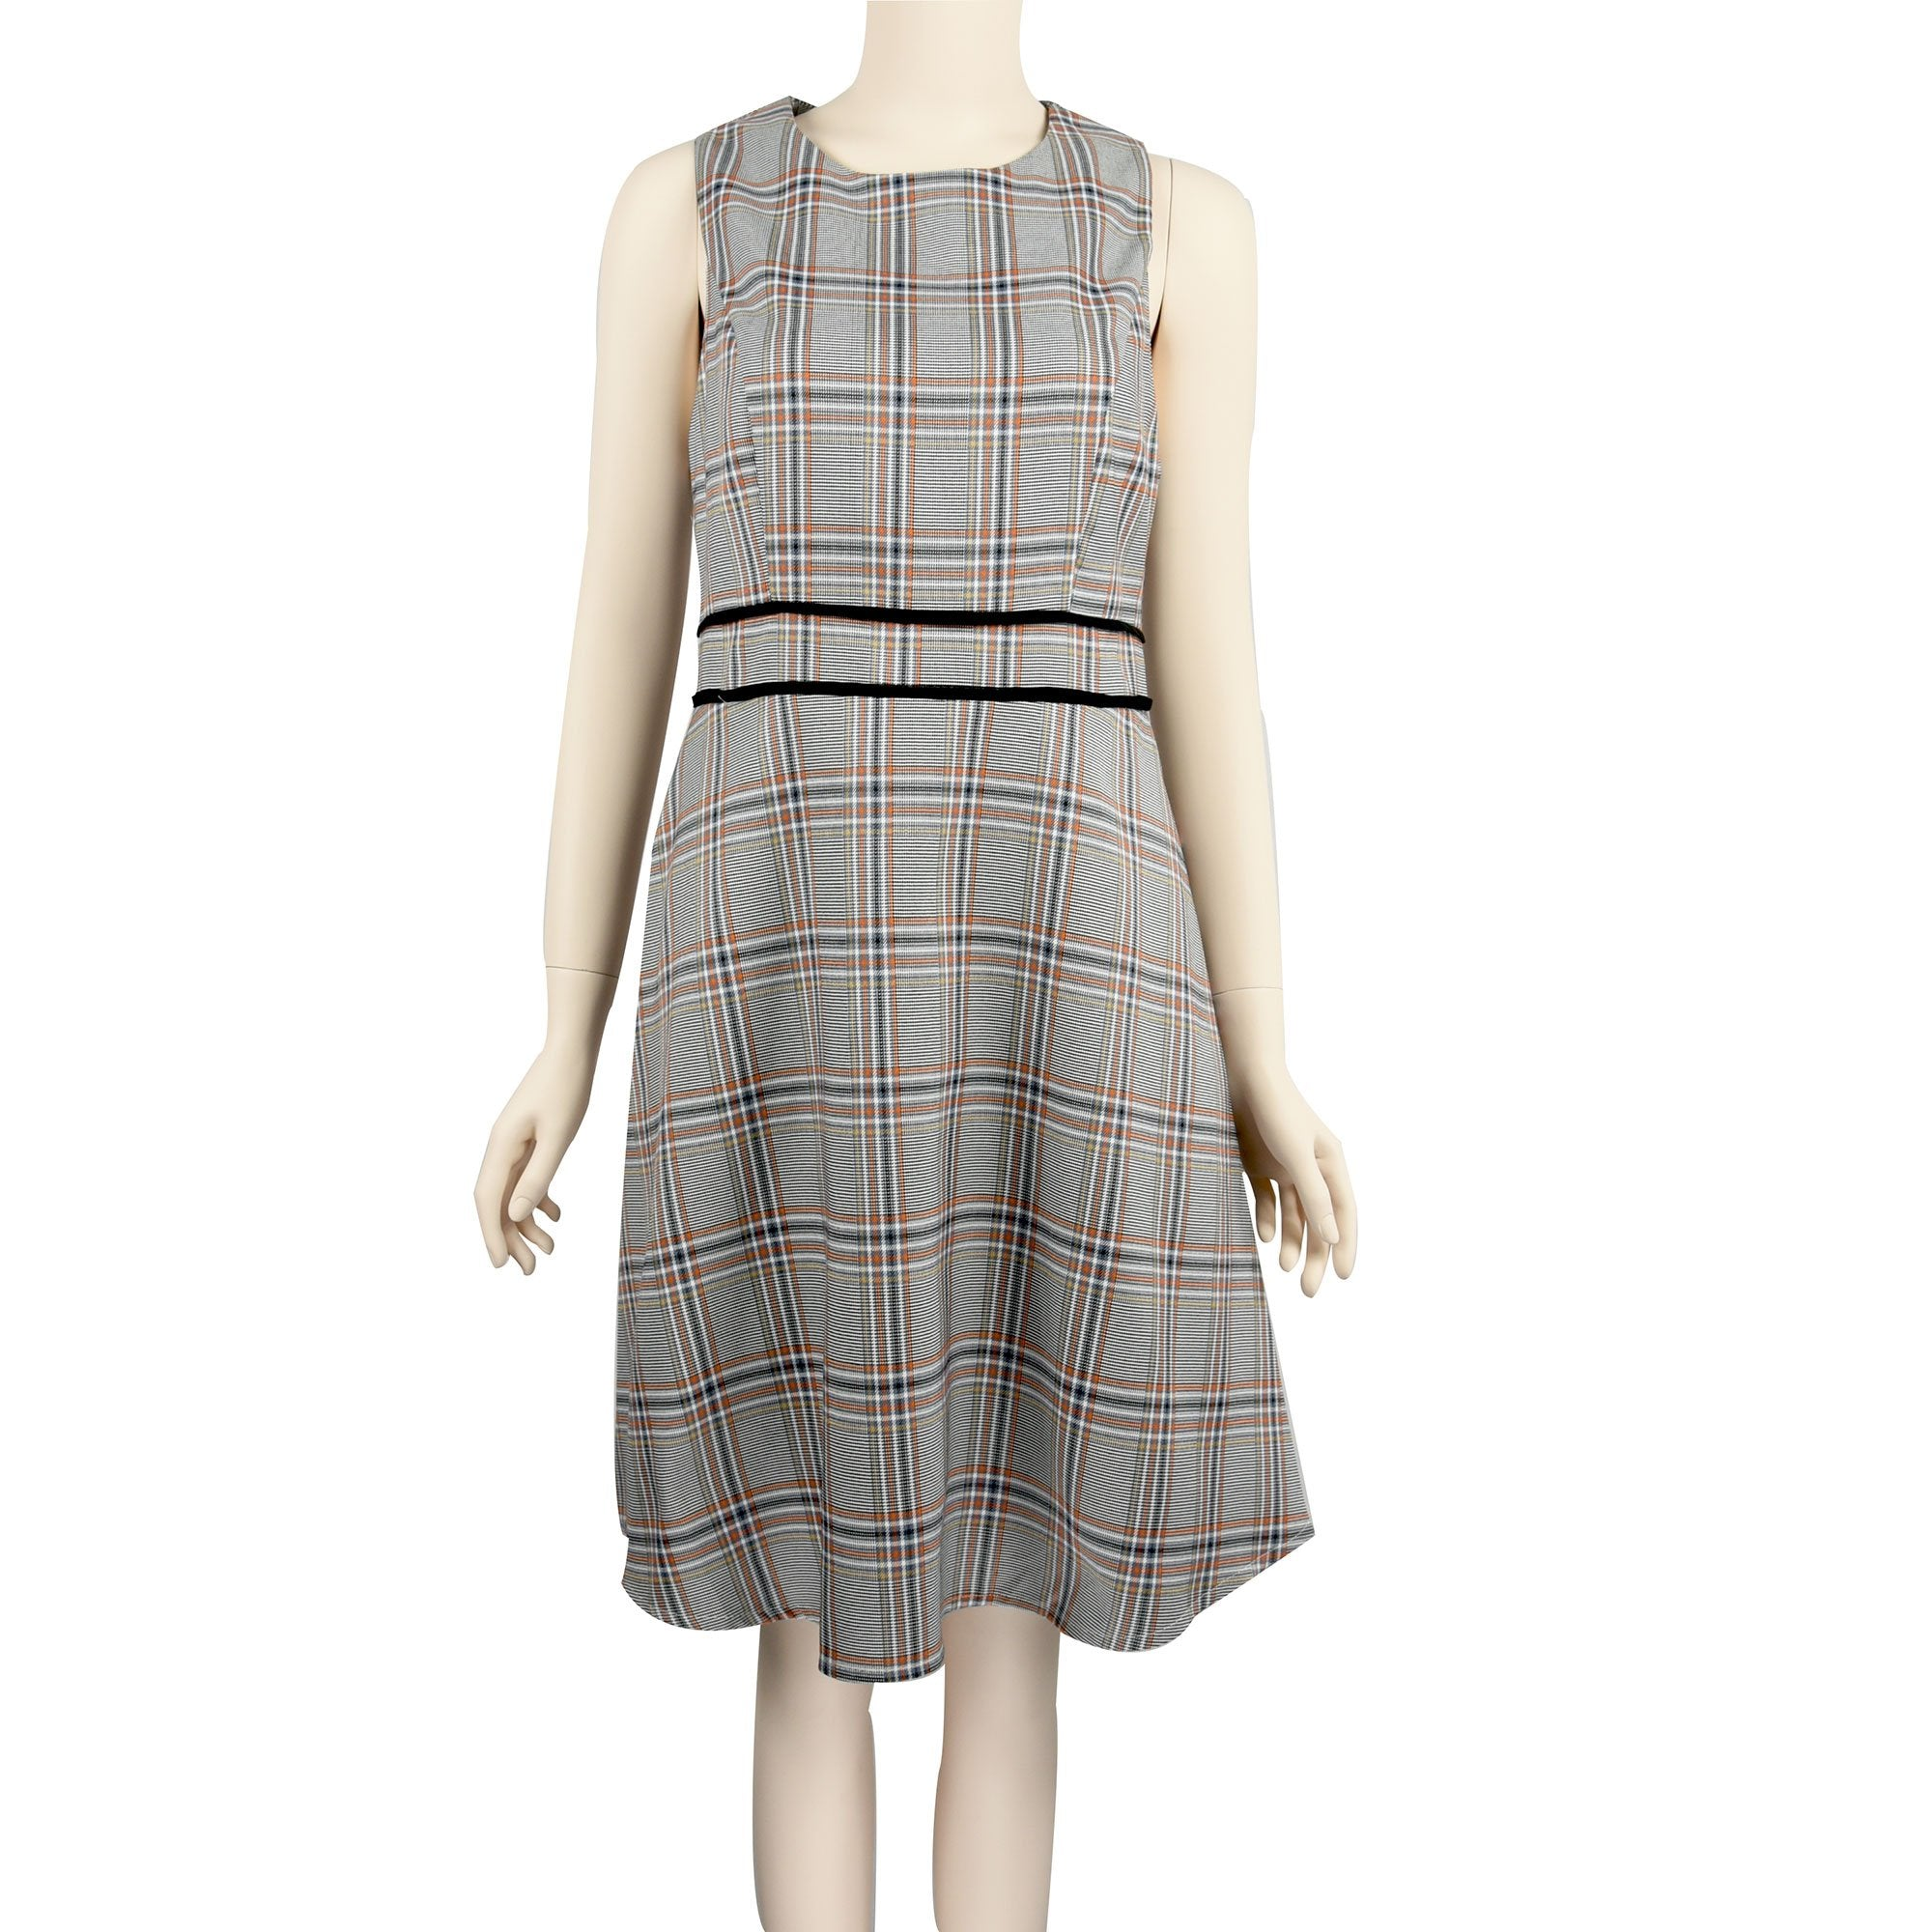 Patch Ladies Dress - Sleeveless Grid Printed Dress with neon piping